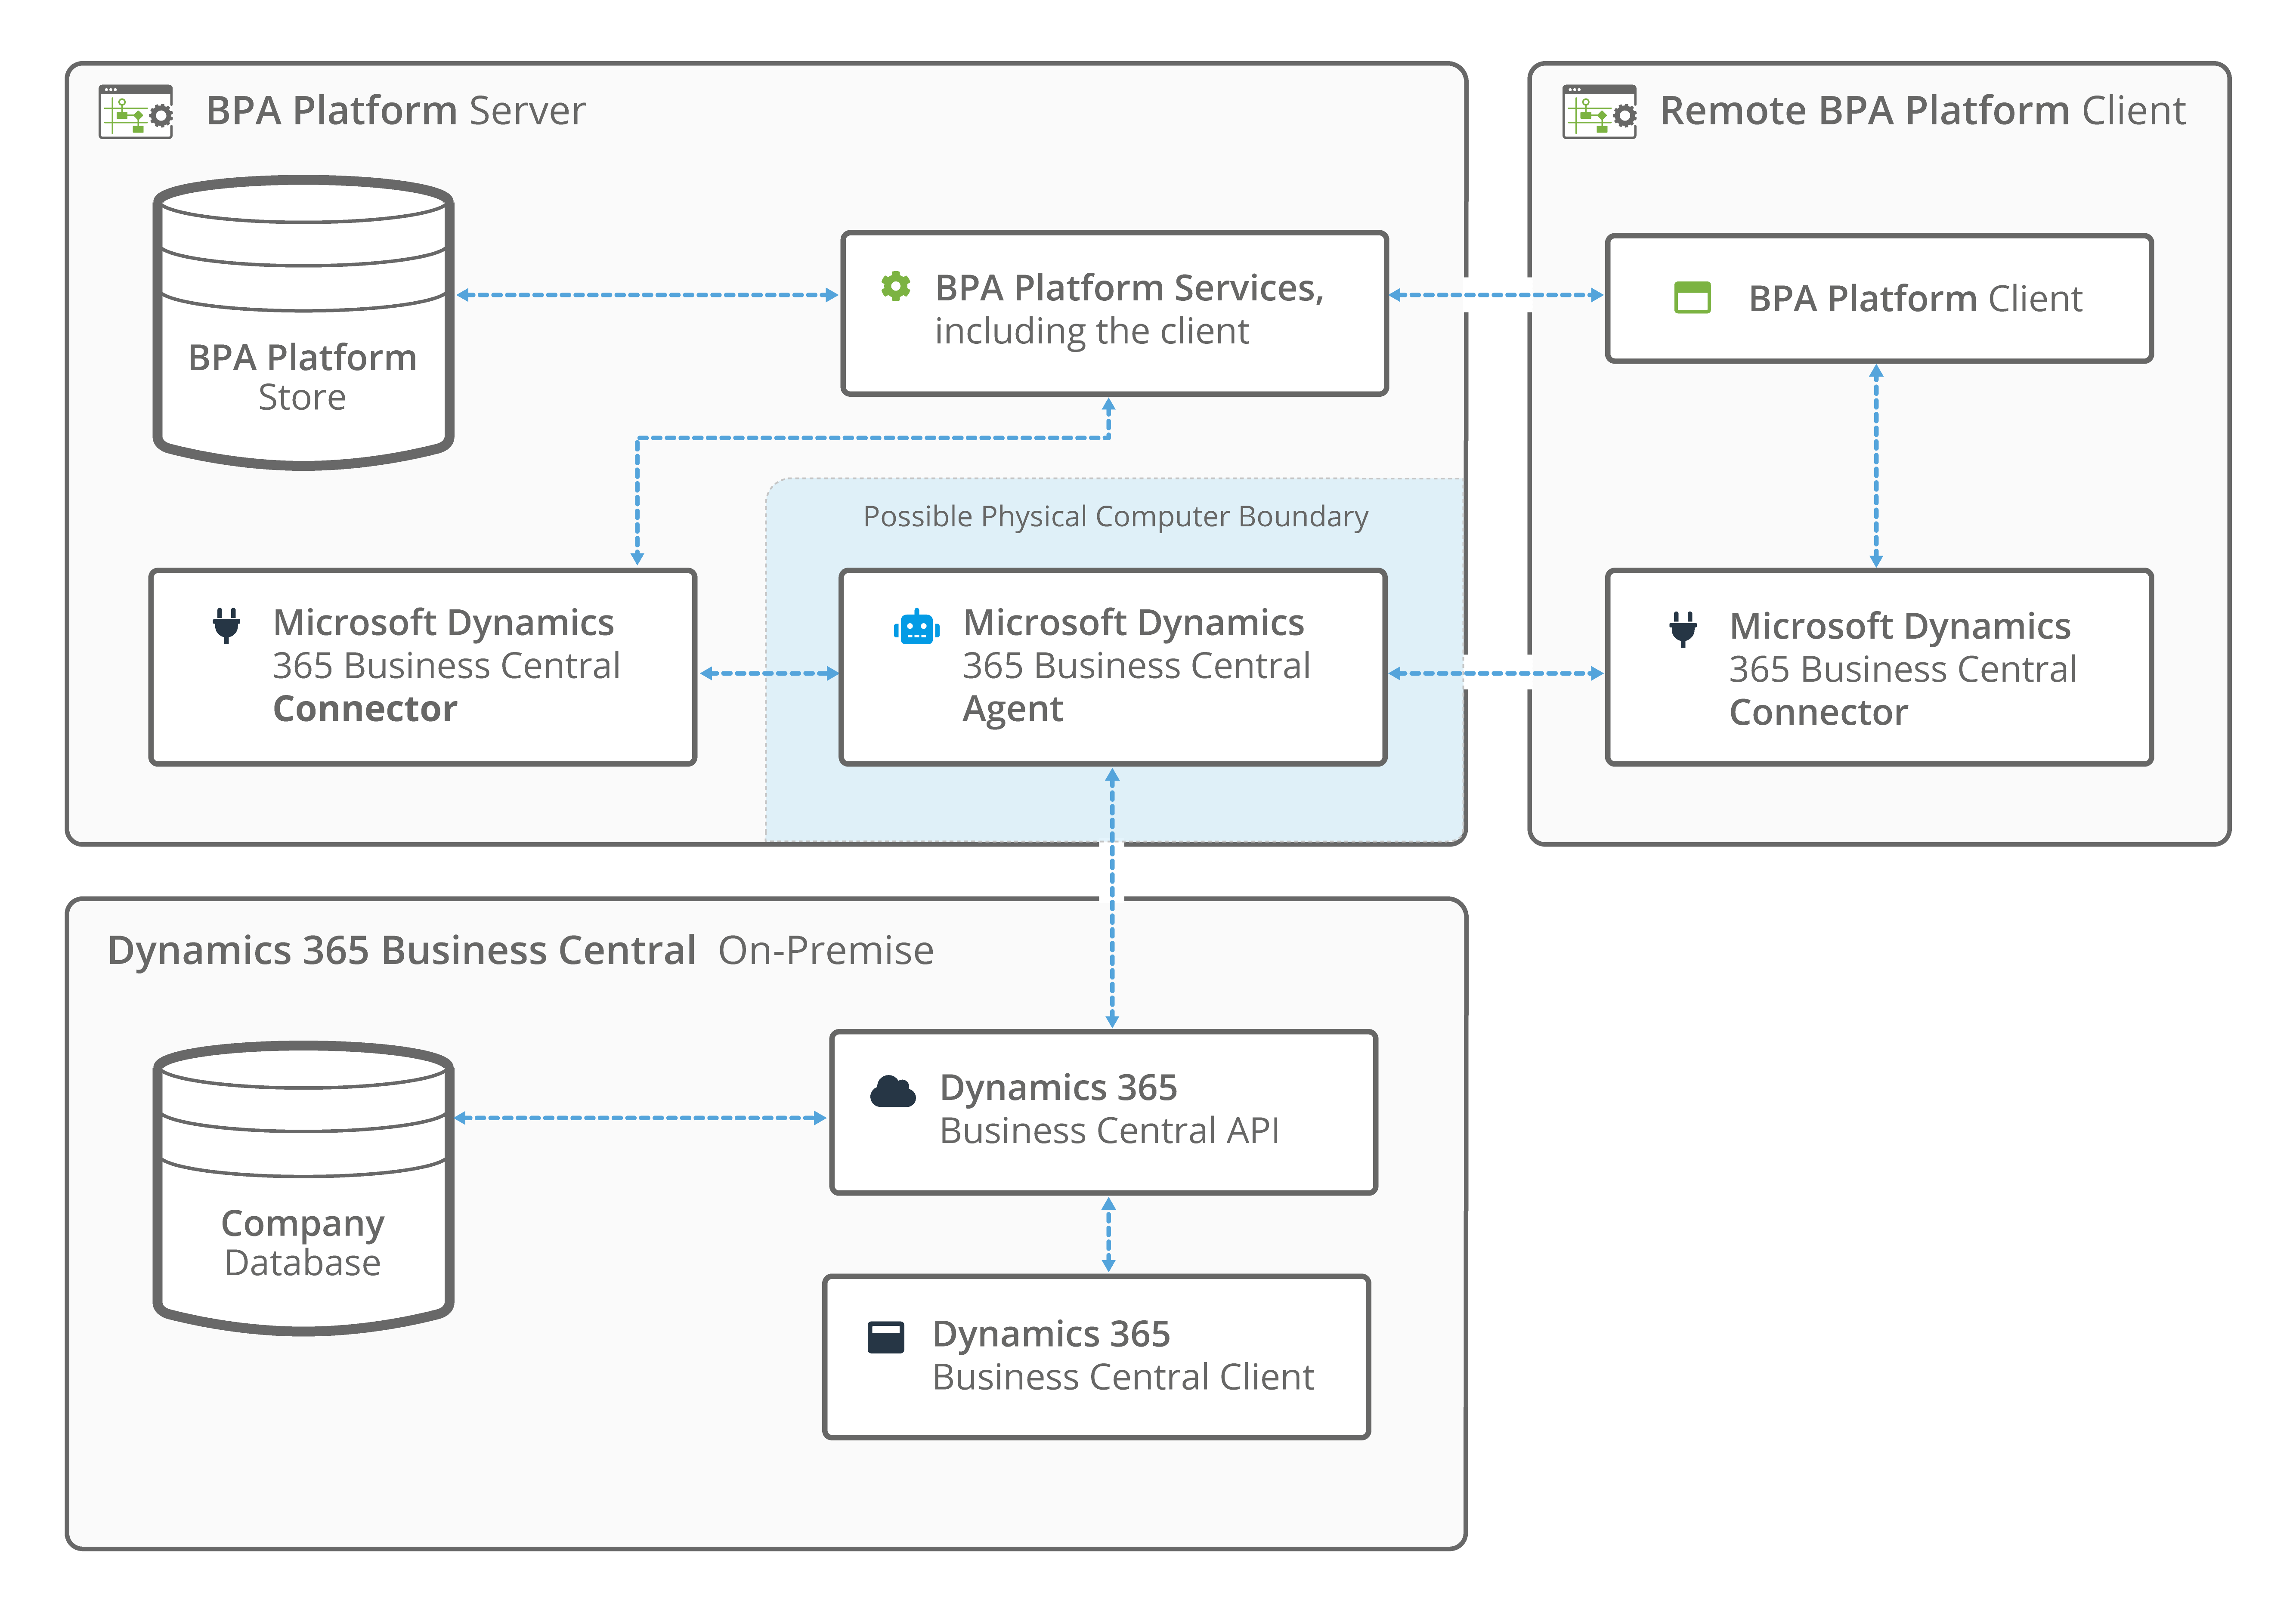 Dynamics 365 Business Central connector on-premises